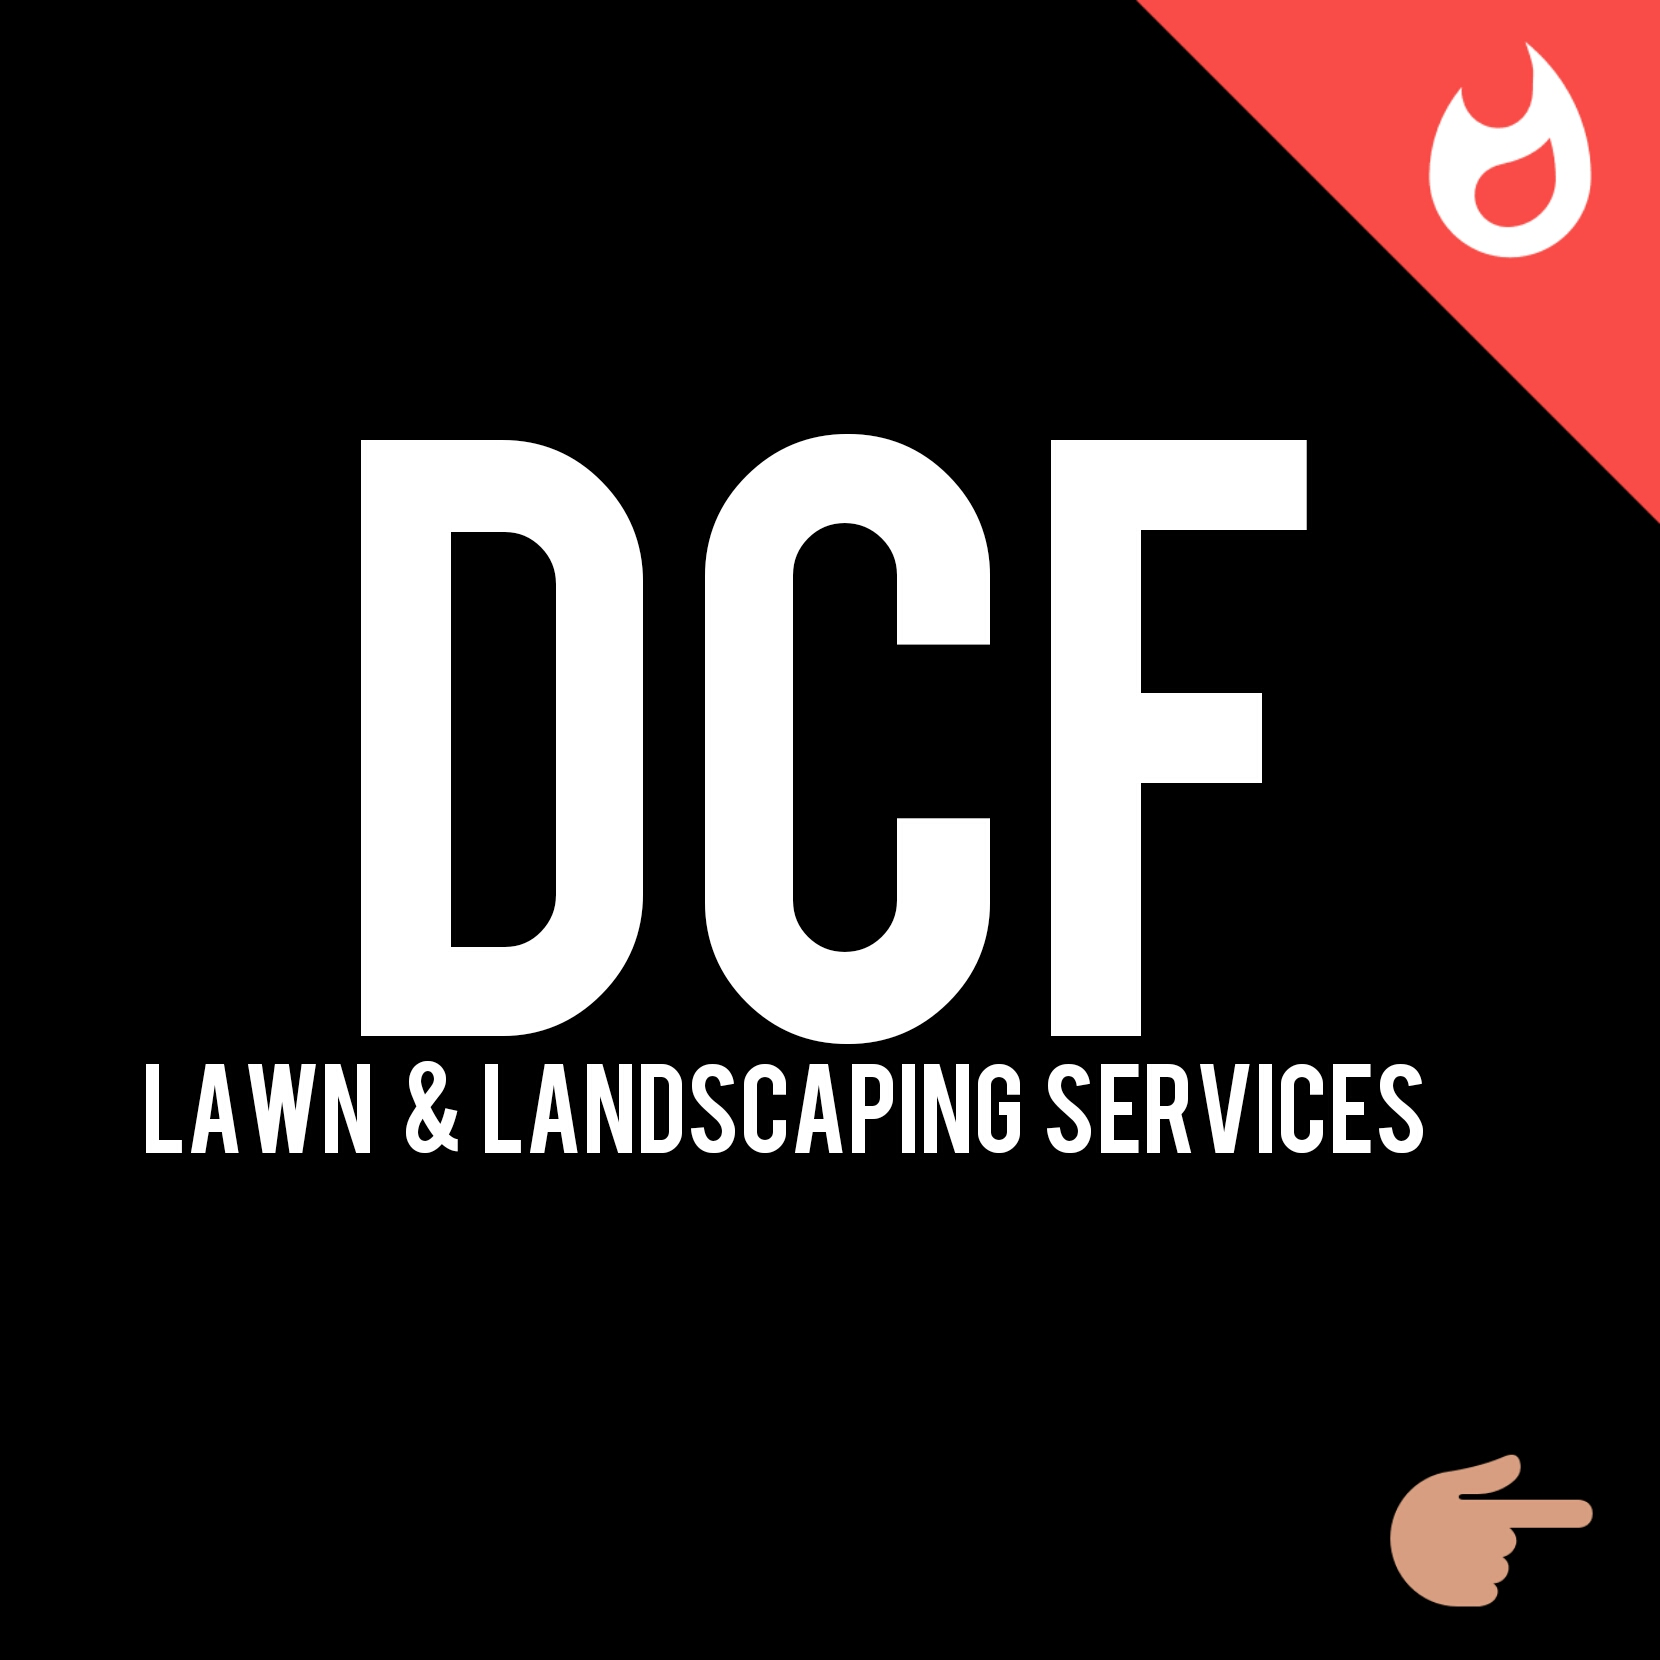 DCF Lawn and Landscaping Services